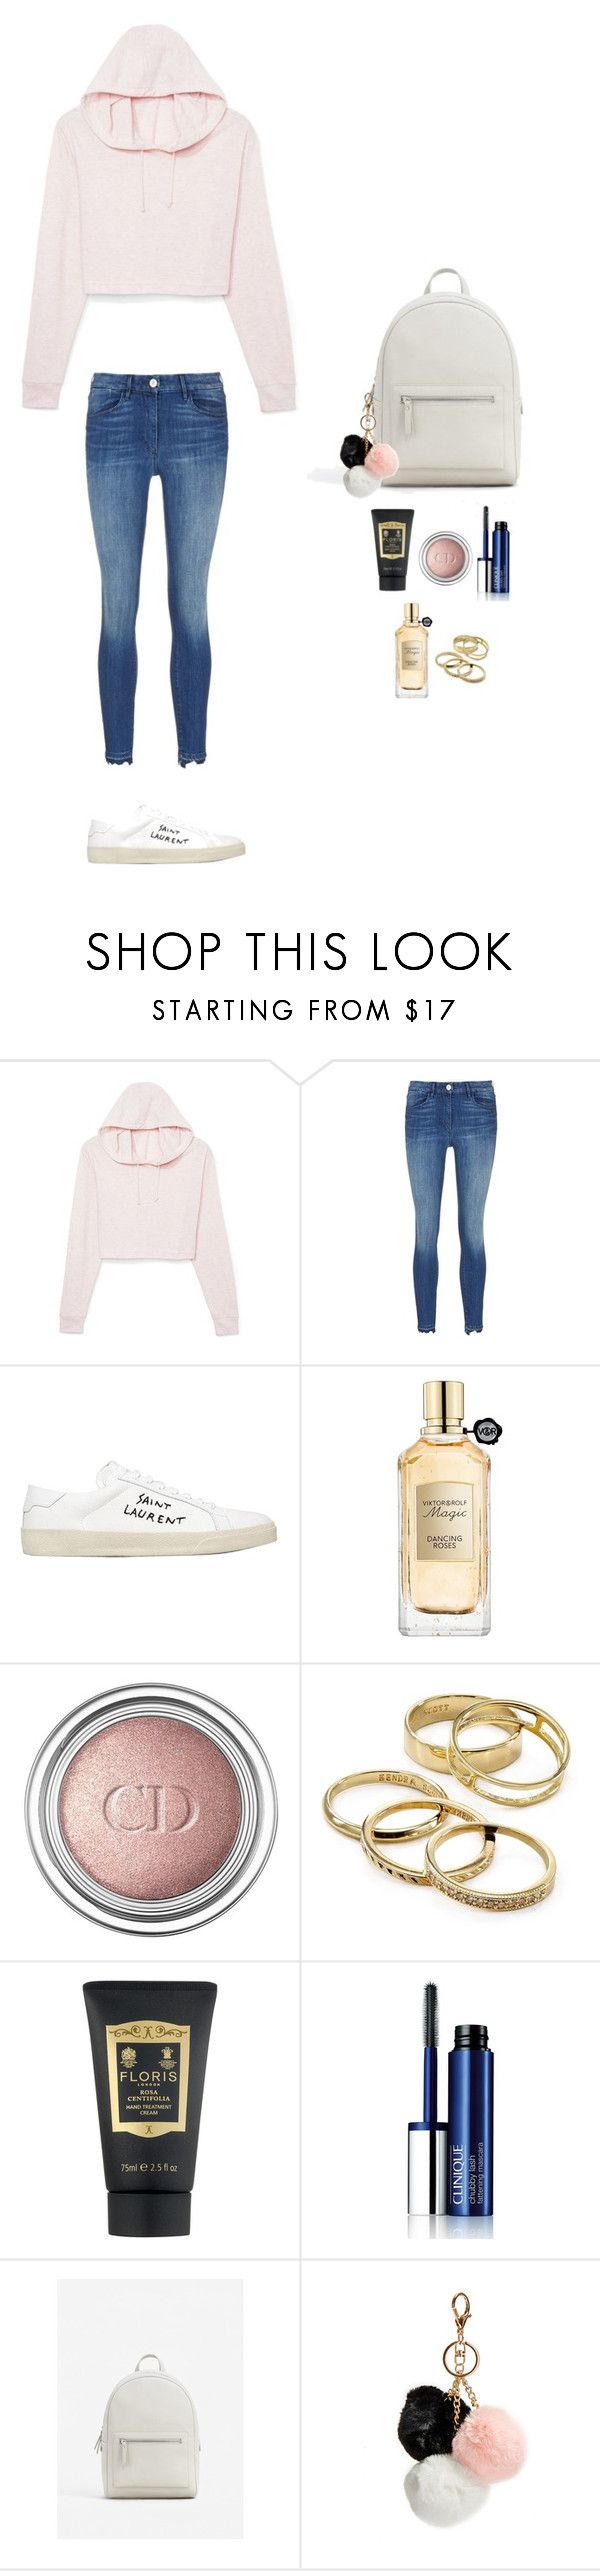 """Style #186"" by maksimchuk-vika ❤ liked on Polyvore featuring 3x1, Yves Saint Laurent, Viktor & Rolf, Christian Dior, Kendra Scott, Floris, Clinique, MANGO and GUESS"